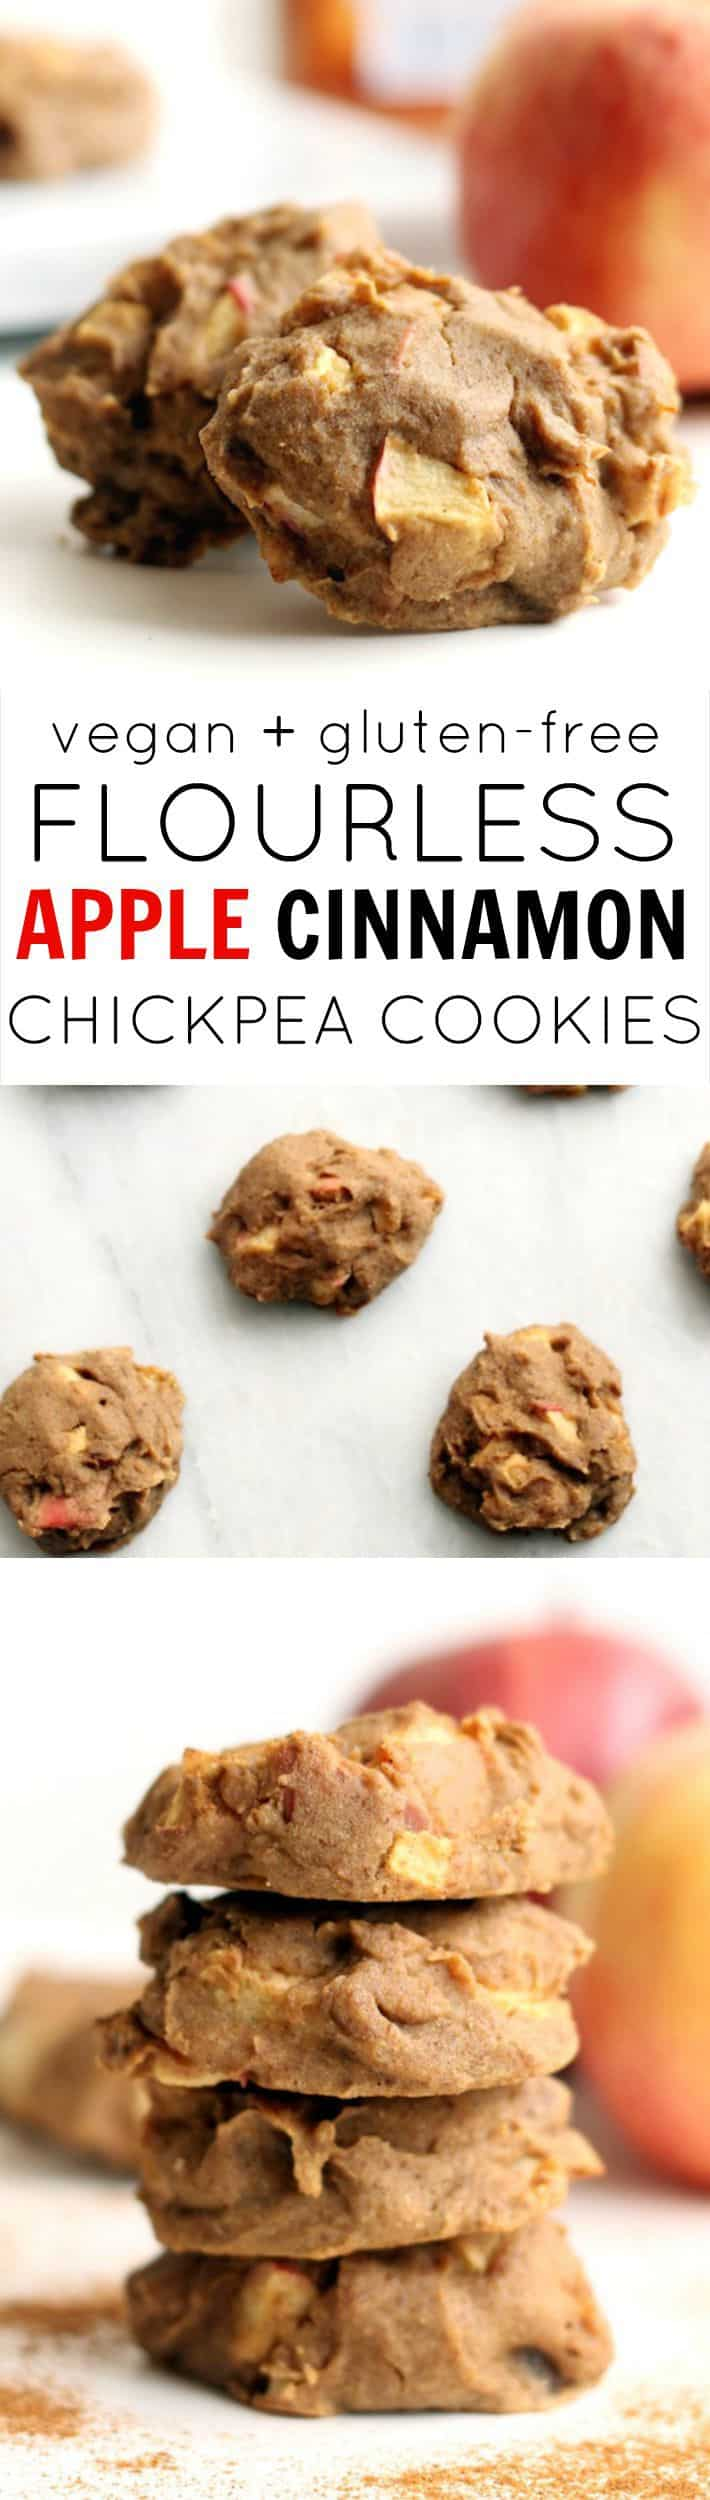 Flourless Apple Cinnamon Cookies are a super moist, lightluy sweetened, vegan, kid-friendly treat! No oil, flour, butter, or refined sugar.